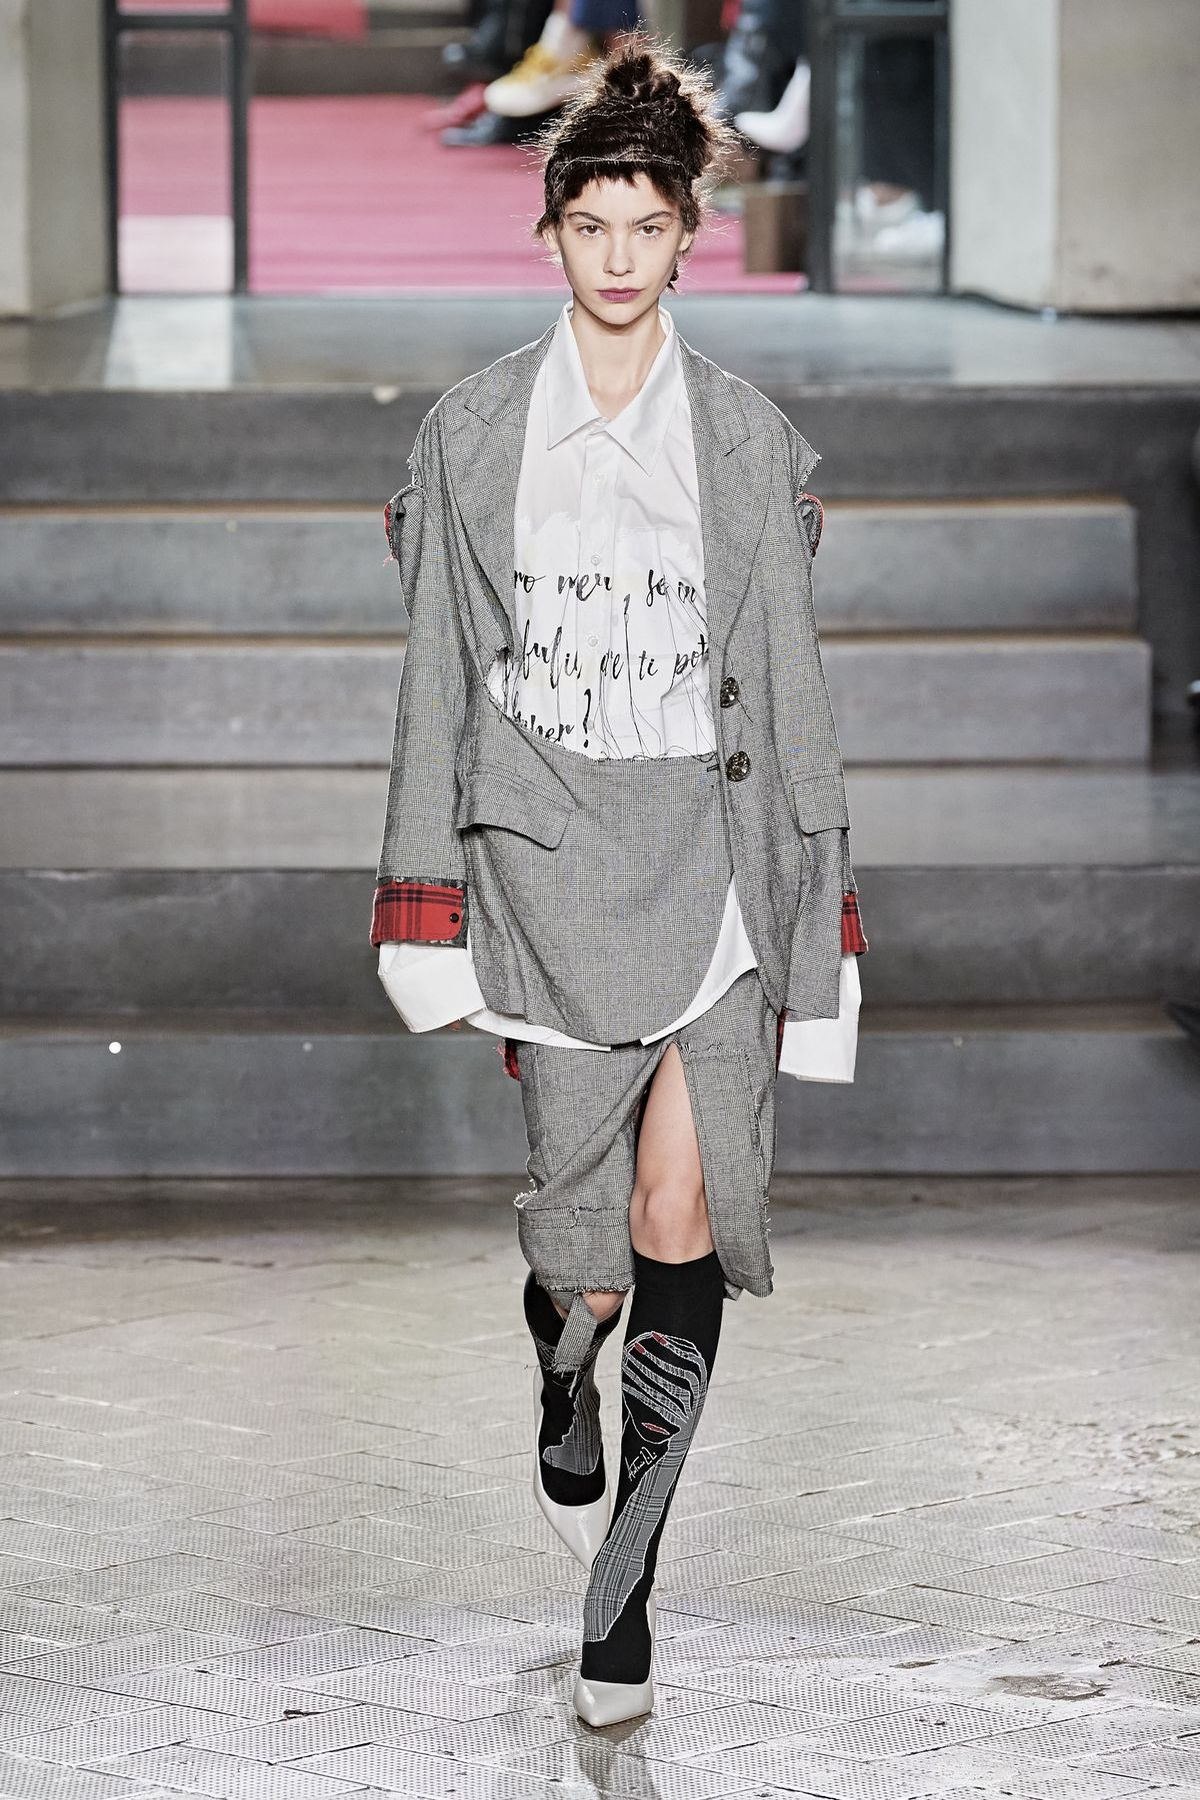 Mailand, Ready-to-Wear, Herbst/Winter 2020/21 (ddp images)